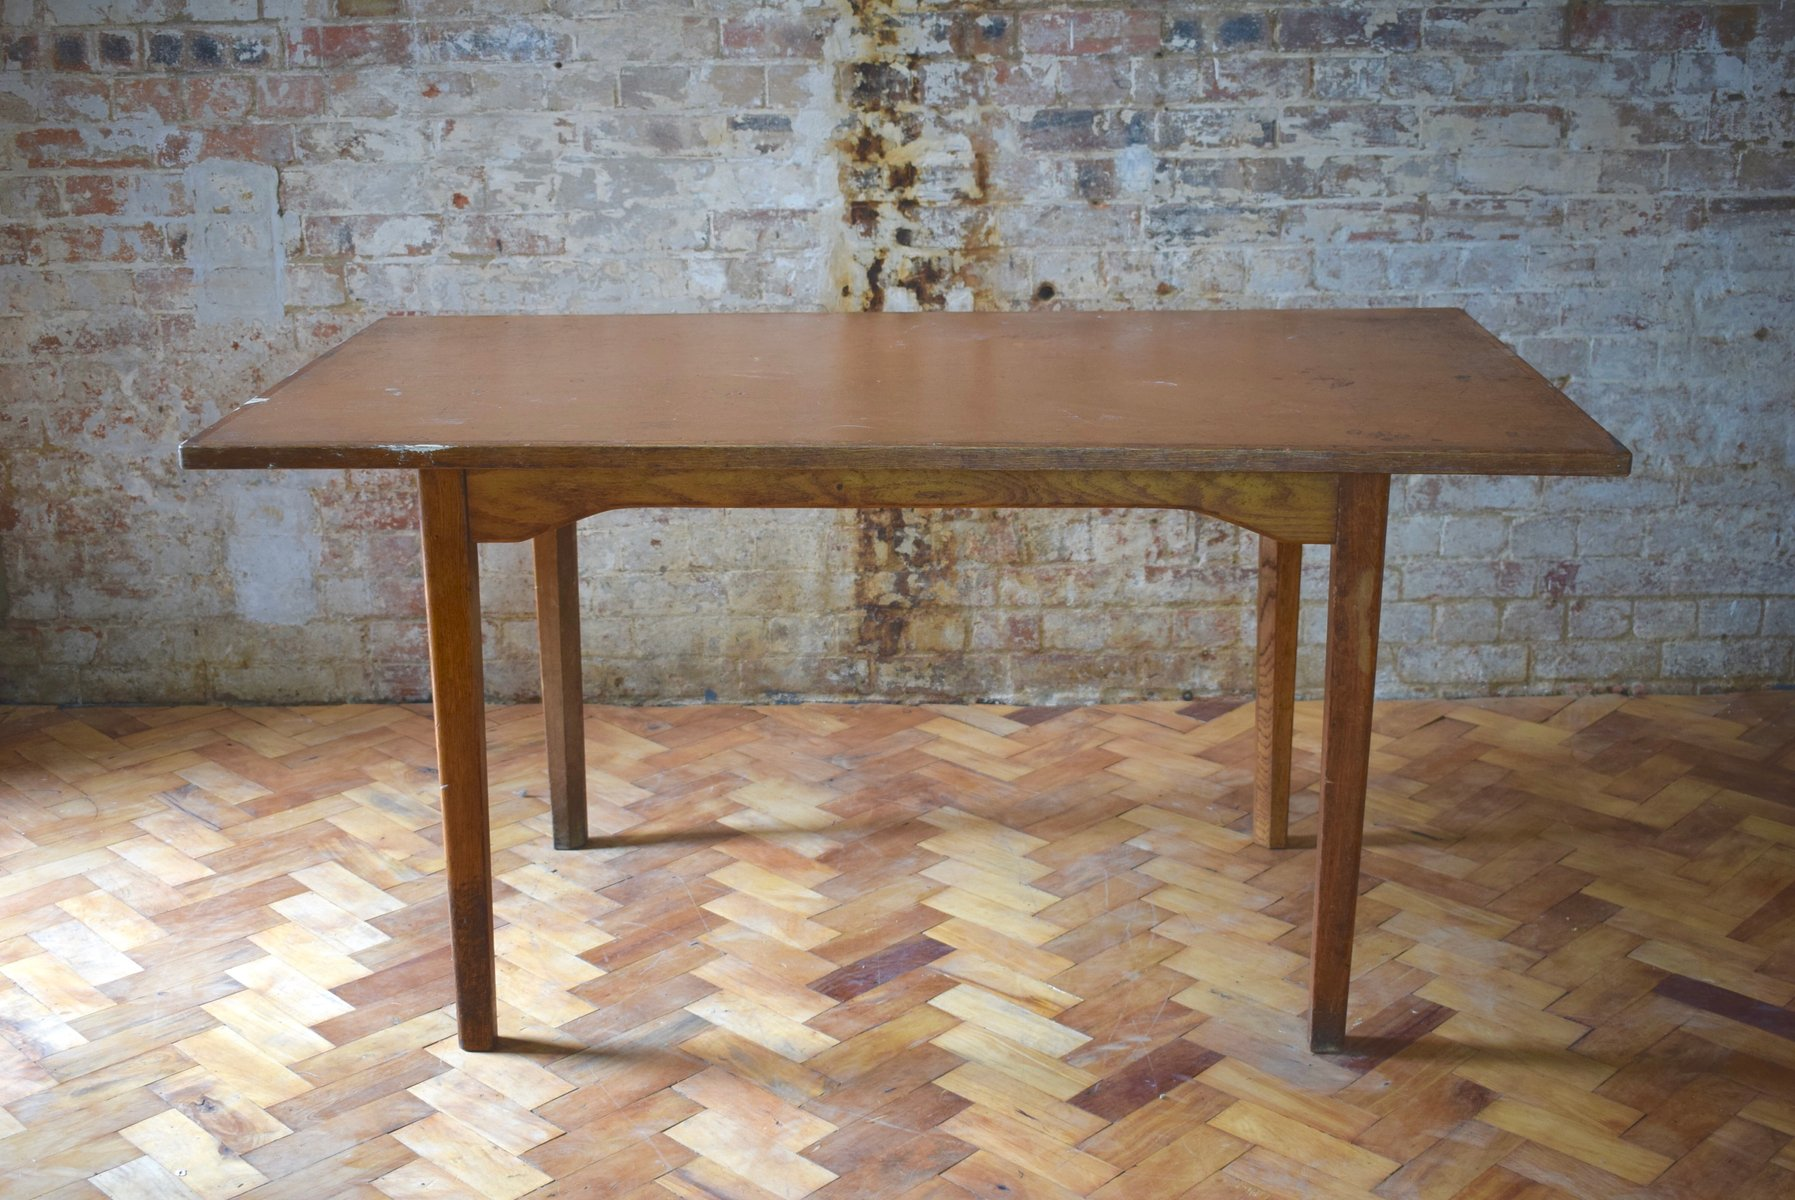 MidCentury Oak Dining Table From MOD For Sale At Pamono - Mid century oak dining table